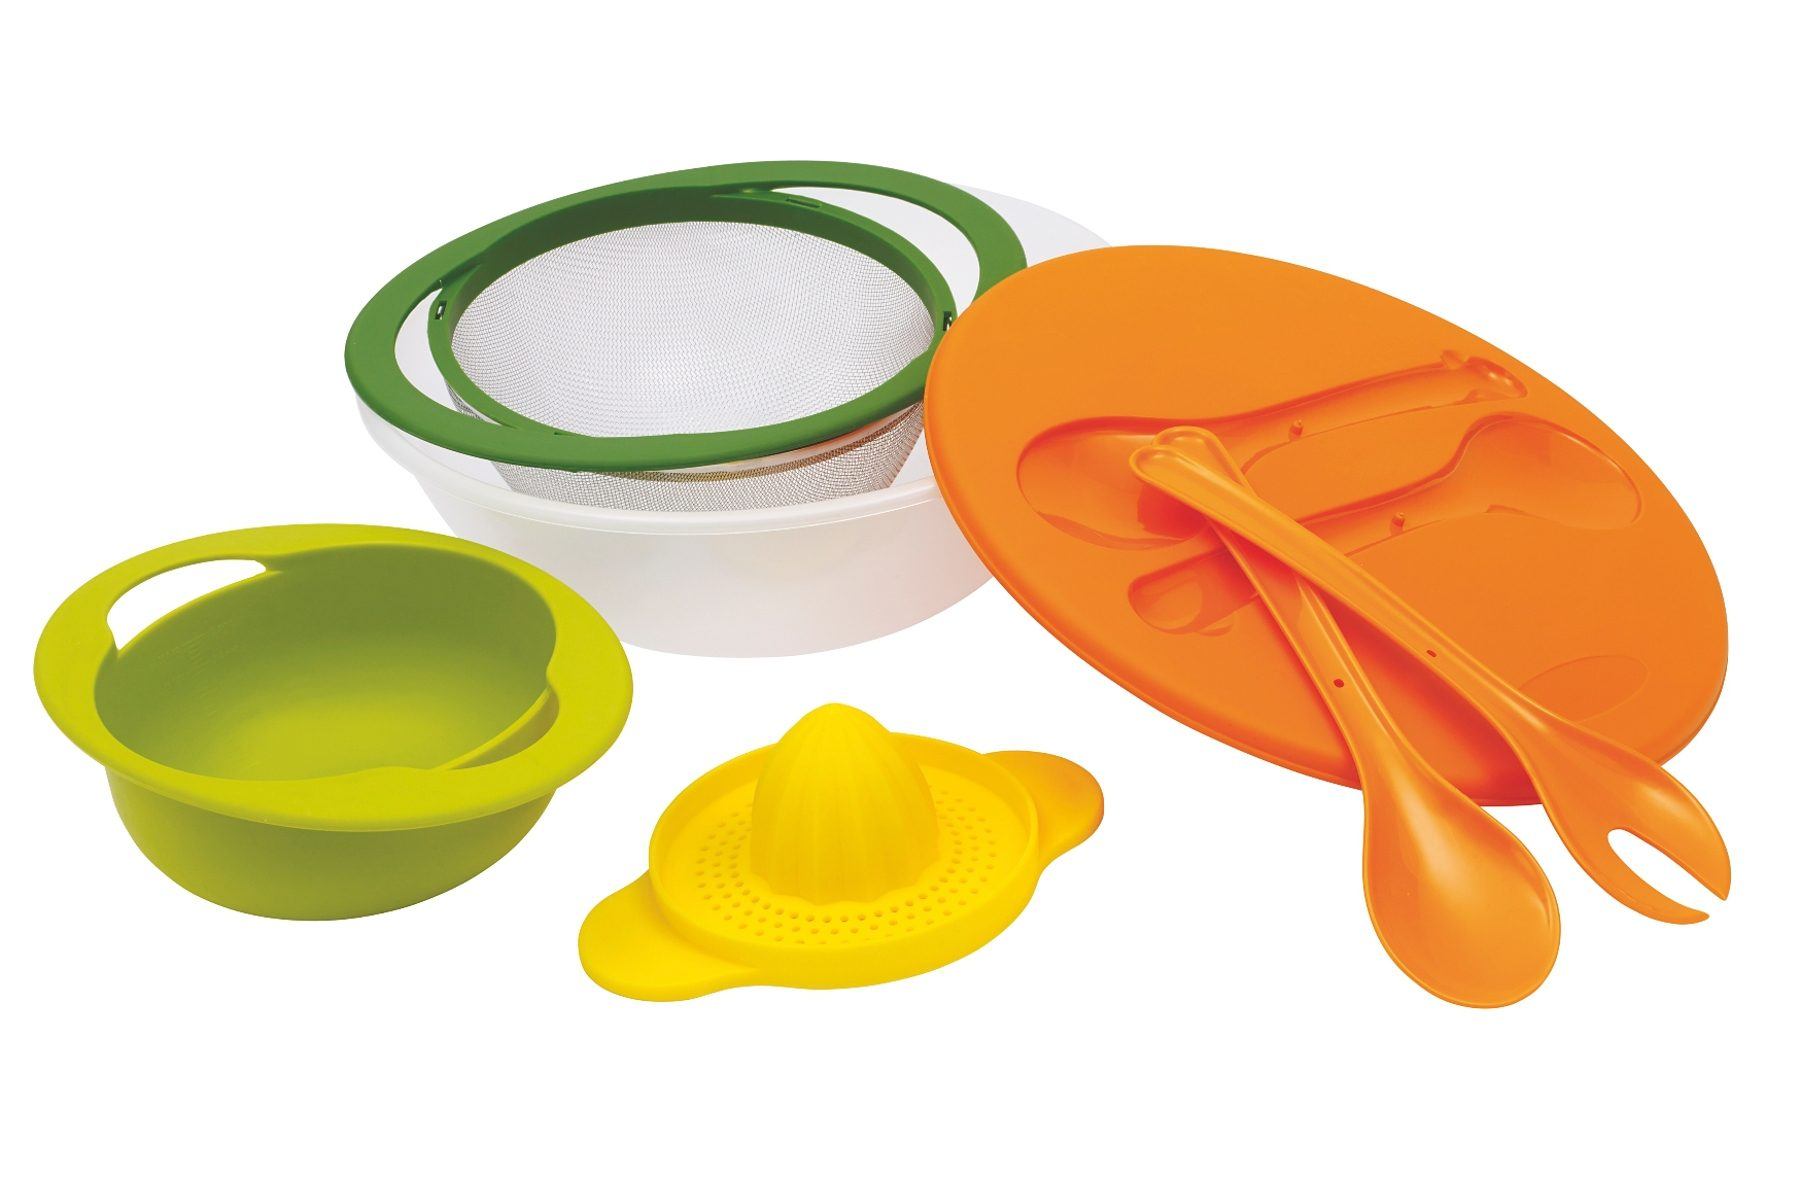 easy camp Camping-Geschirr »Multi Bowl Set«